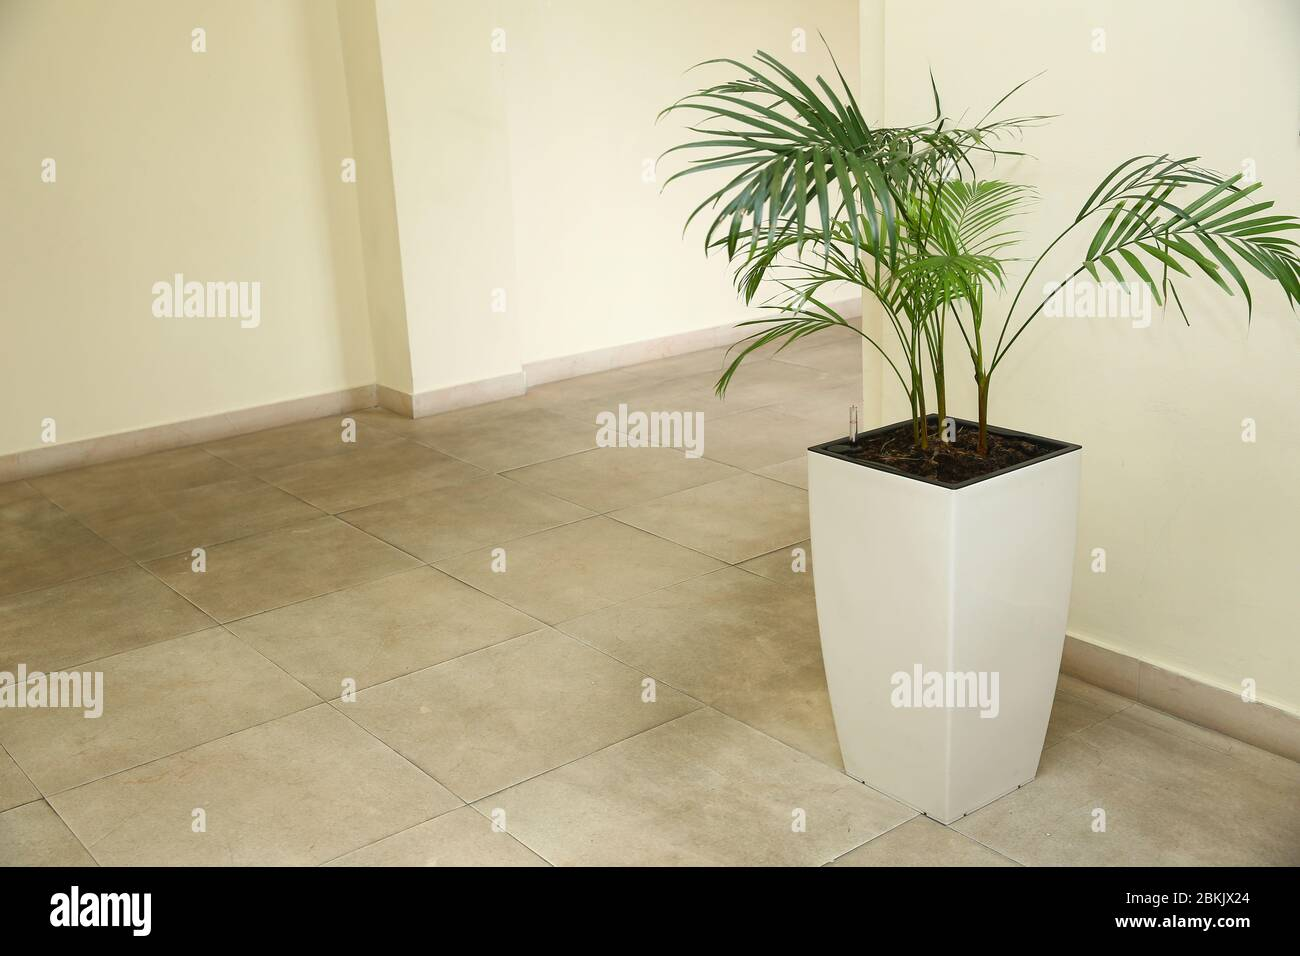 Vases In A Row Green Plant Pot Houseplant Areca Palm Indoor Flower Pots Plants Large Stock Photo Alamy